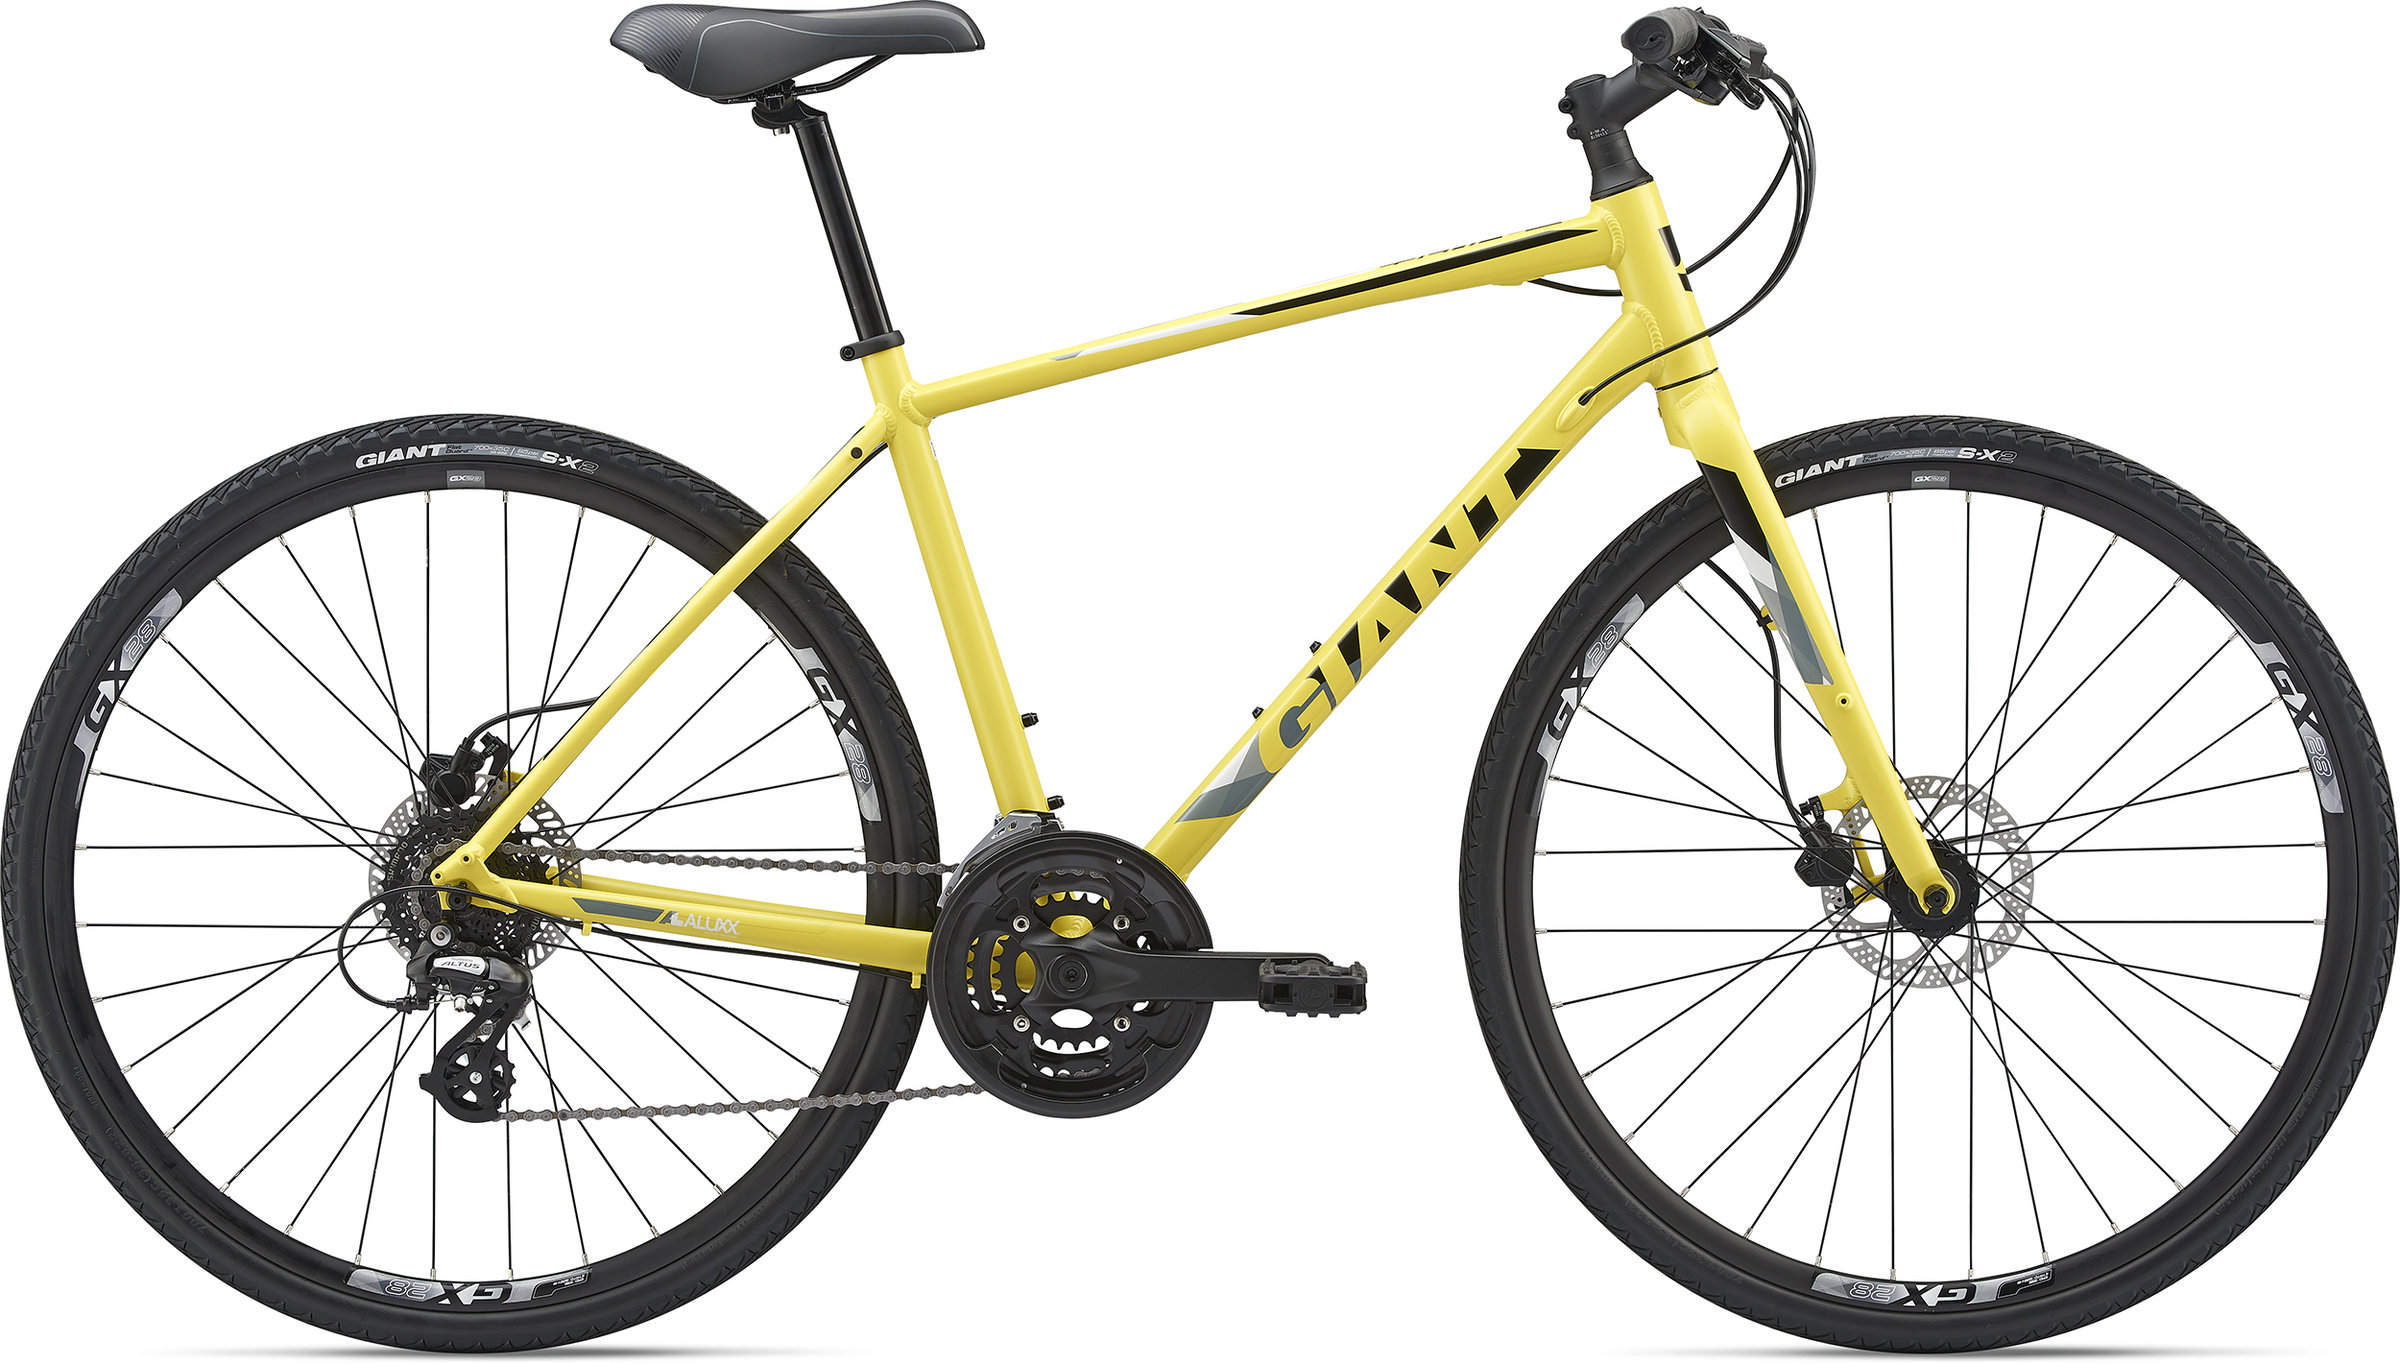 9f1800afc37 Giant Escape 2 Disc - Wheel World Bike Shops - Road Bikes, Mountain Bikes,  Bicycle Parts and Accessories. Parts & Bike Closeouts!